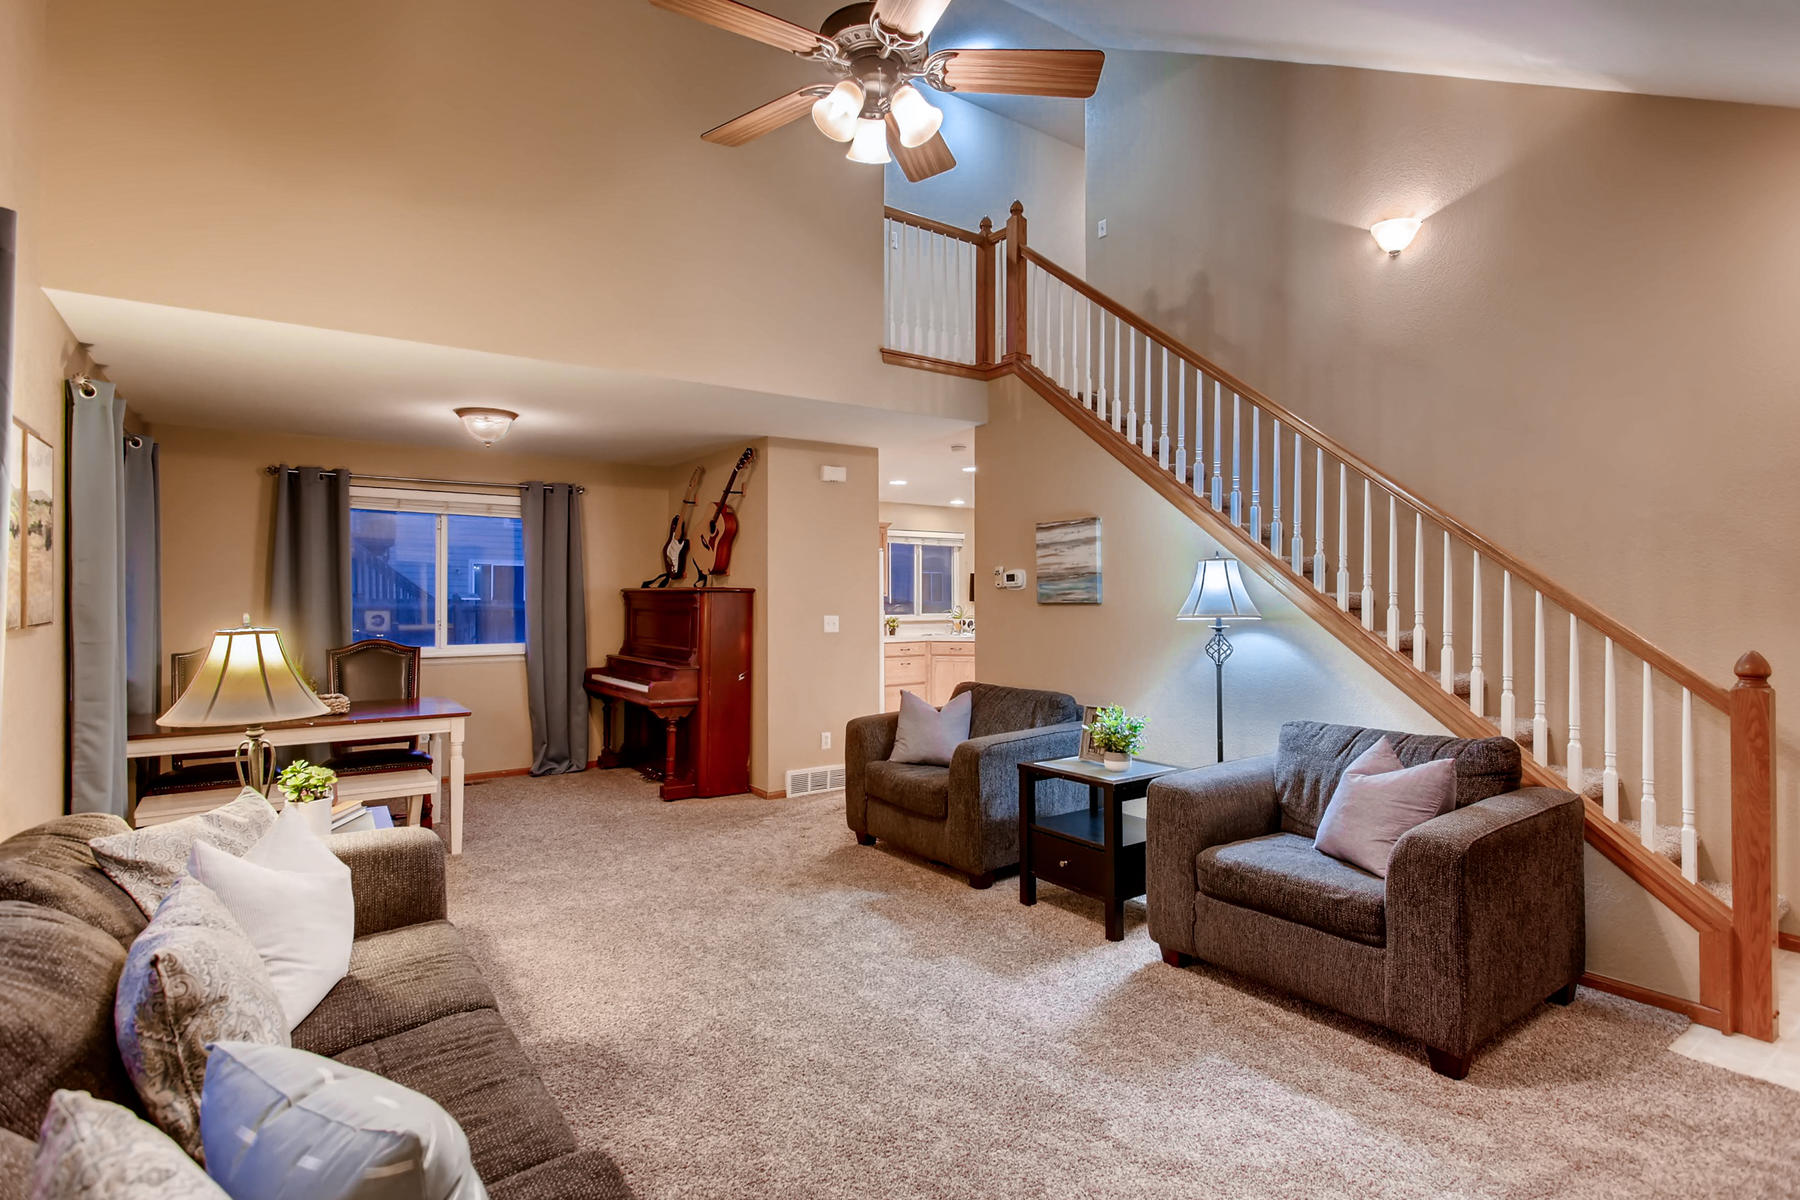 Vaulted Ceilings & Great Layout